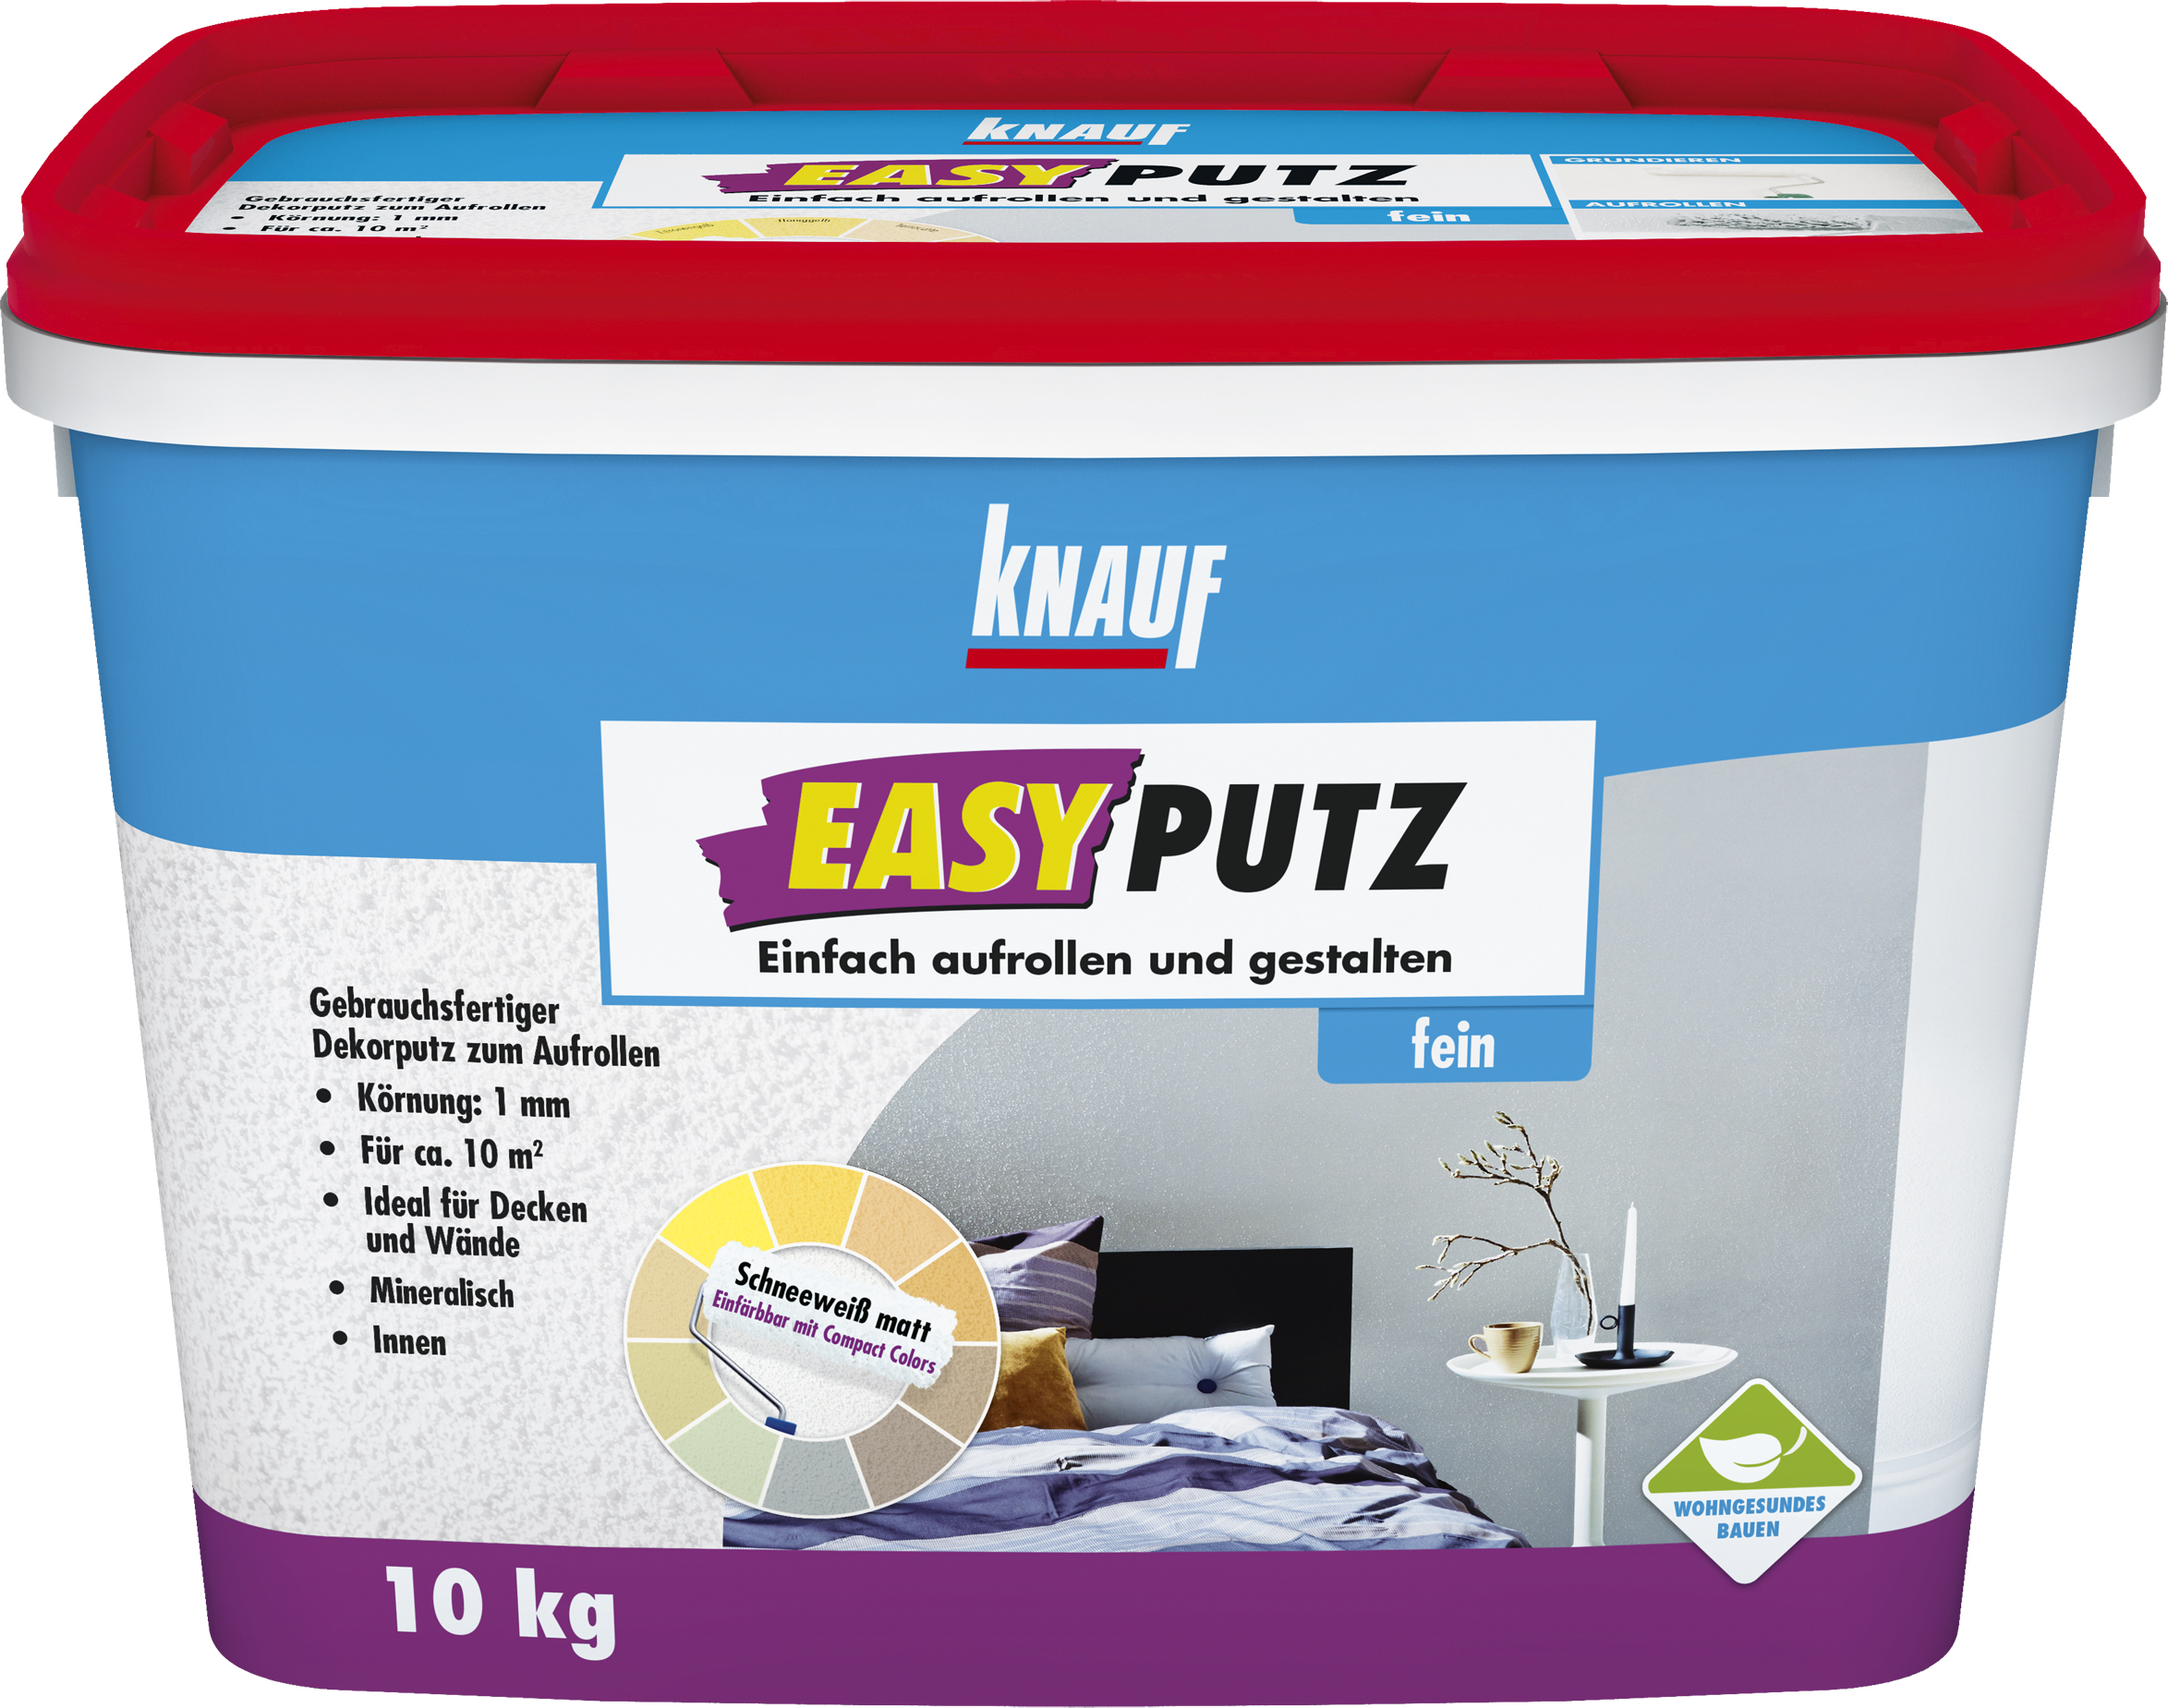 knauf easy putz 1 mm. Black Bedroom Furniture Sets. Home Design Ideas